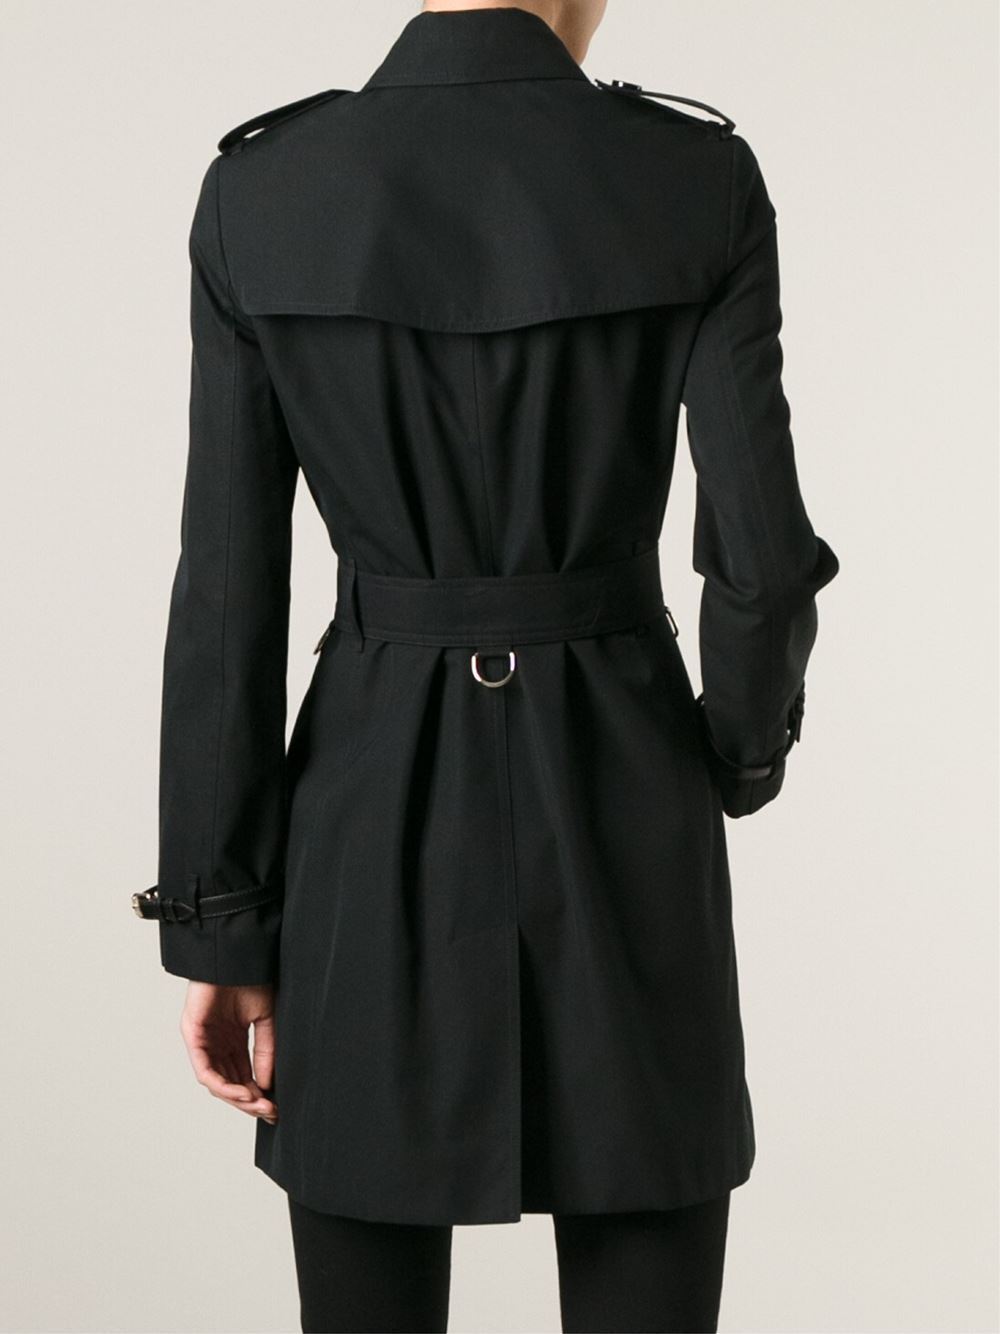 burberry belted trench coat in black lyst. Black Bedroom Furniture Sets. Home Design Ideas